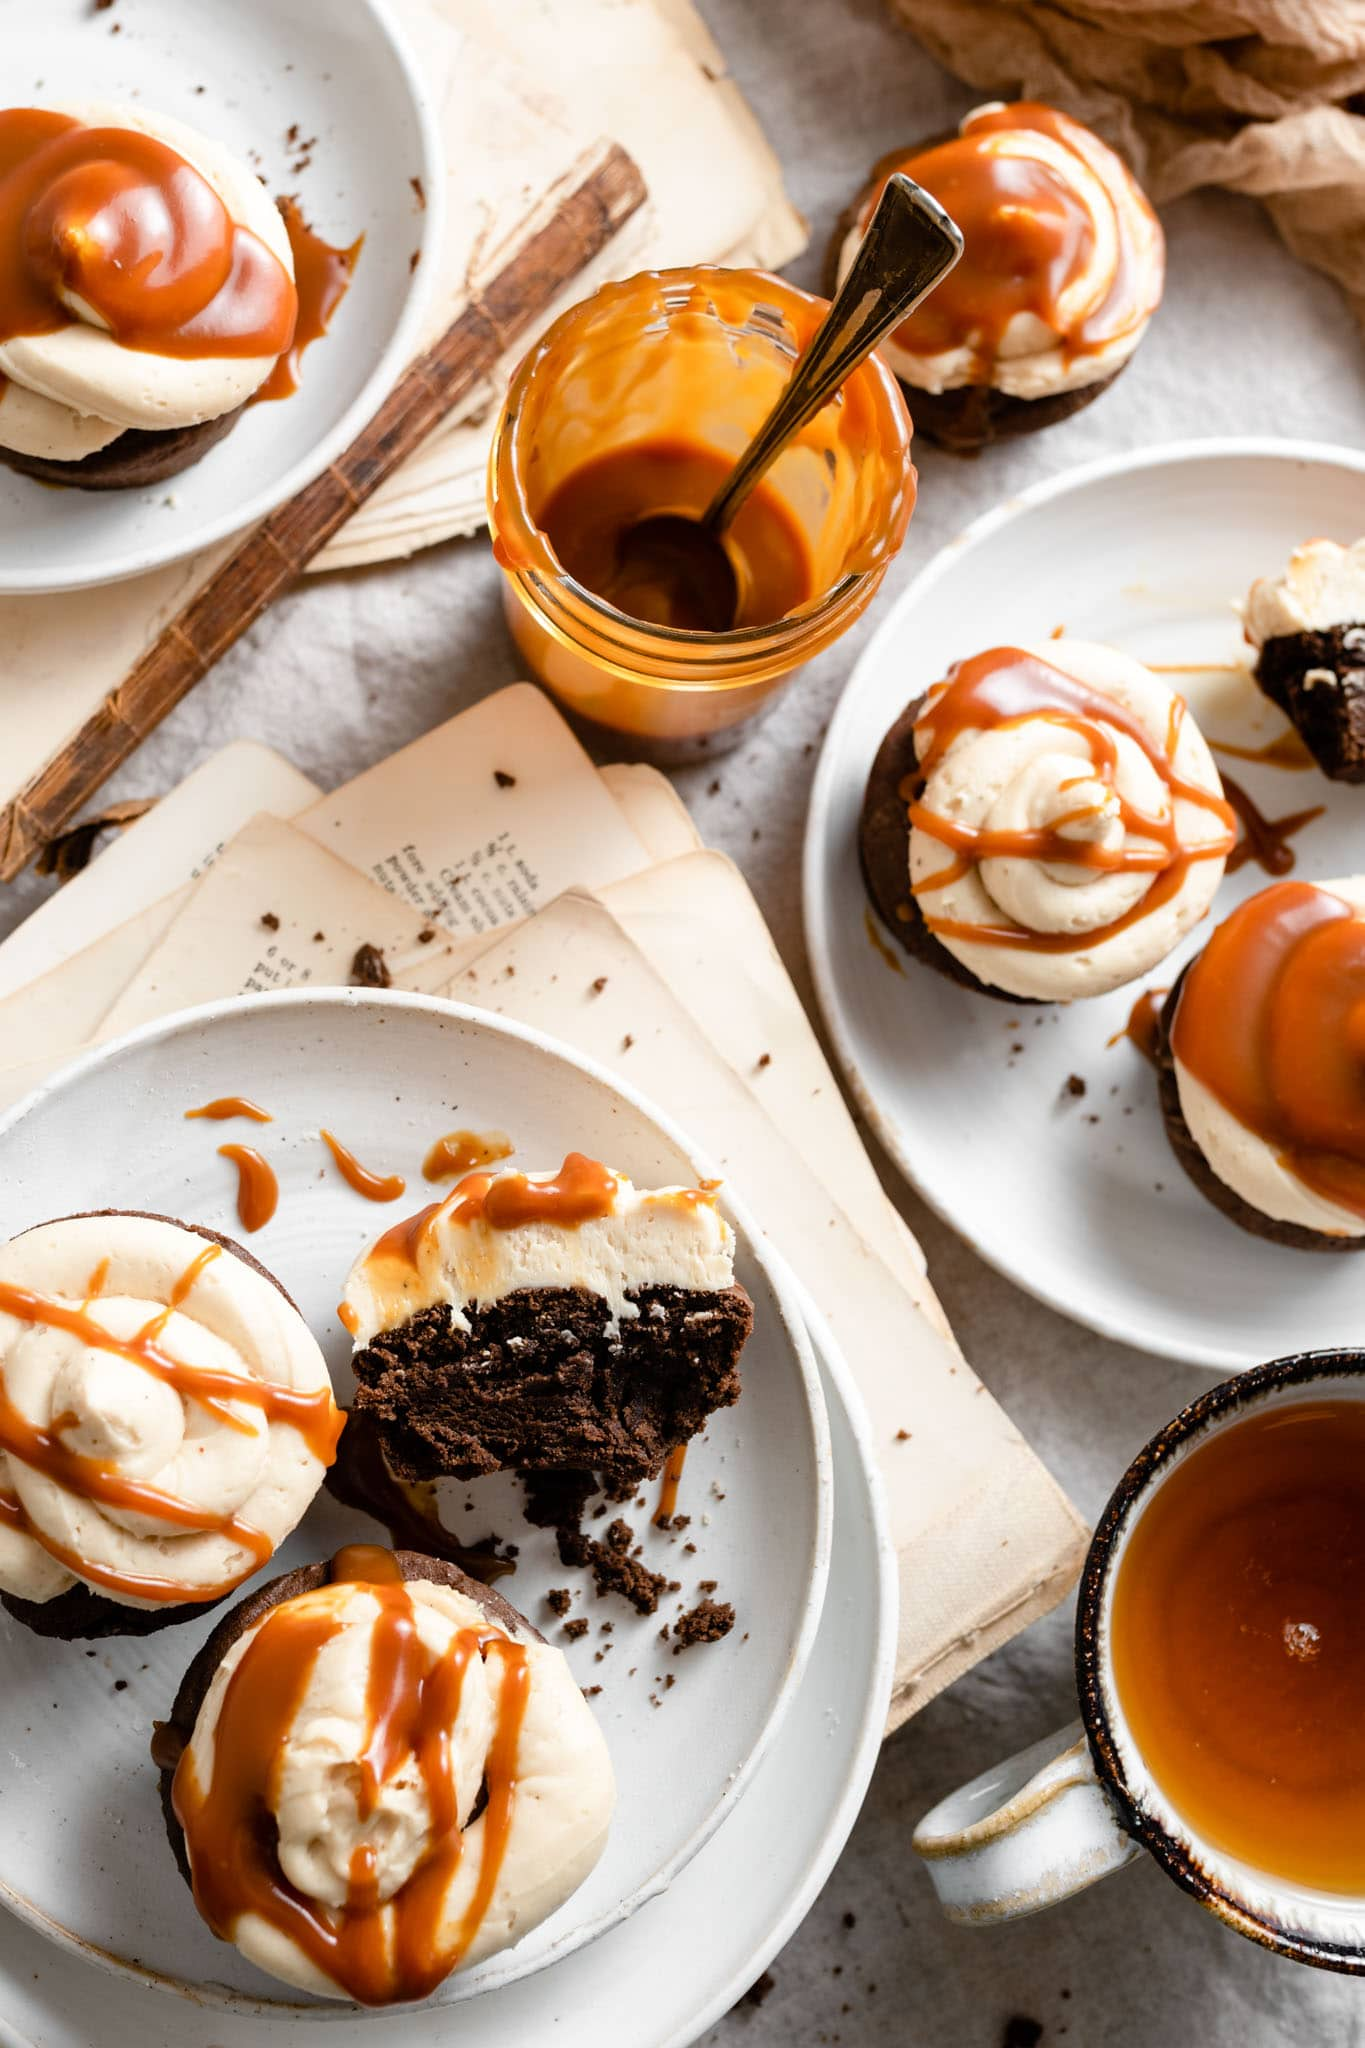 Brownie Cakes with homemade salted caramel drizzle